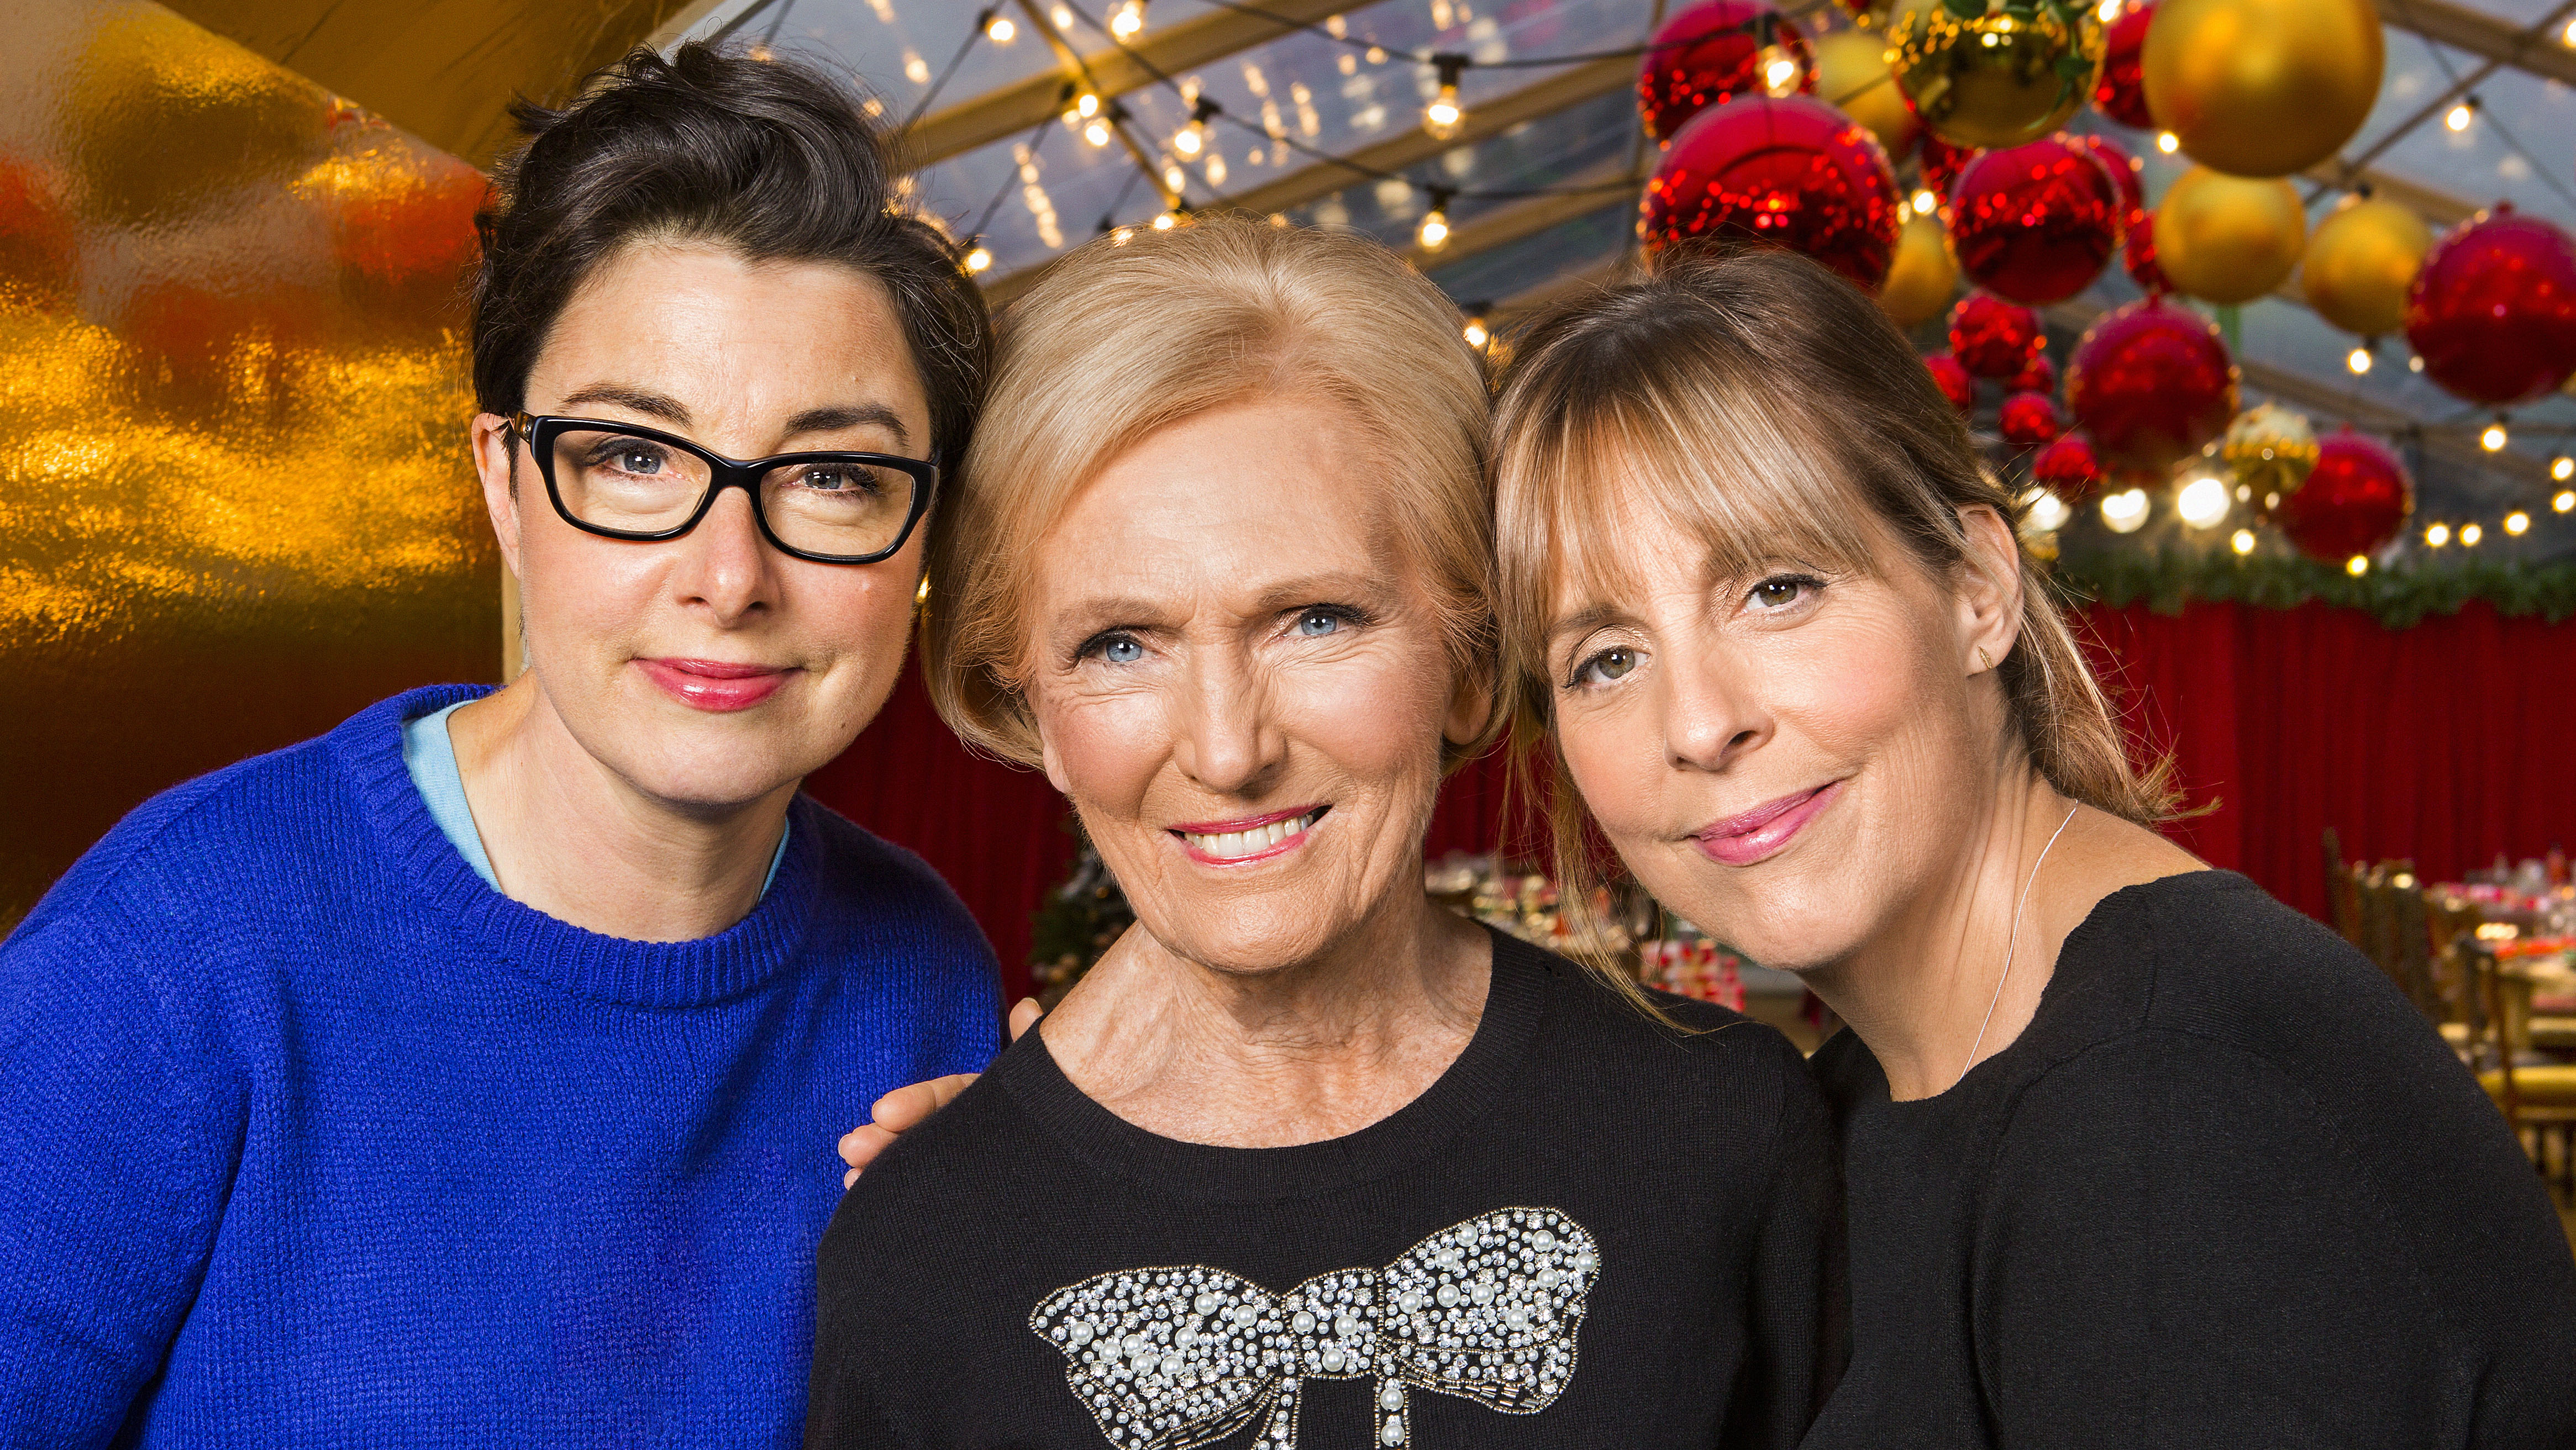 Mel and Sue and Great British Bake Off's OG Mary Berry are cooking up a Christmas special